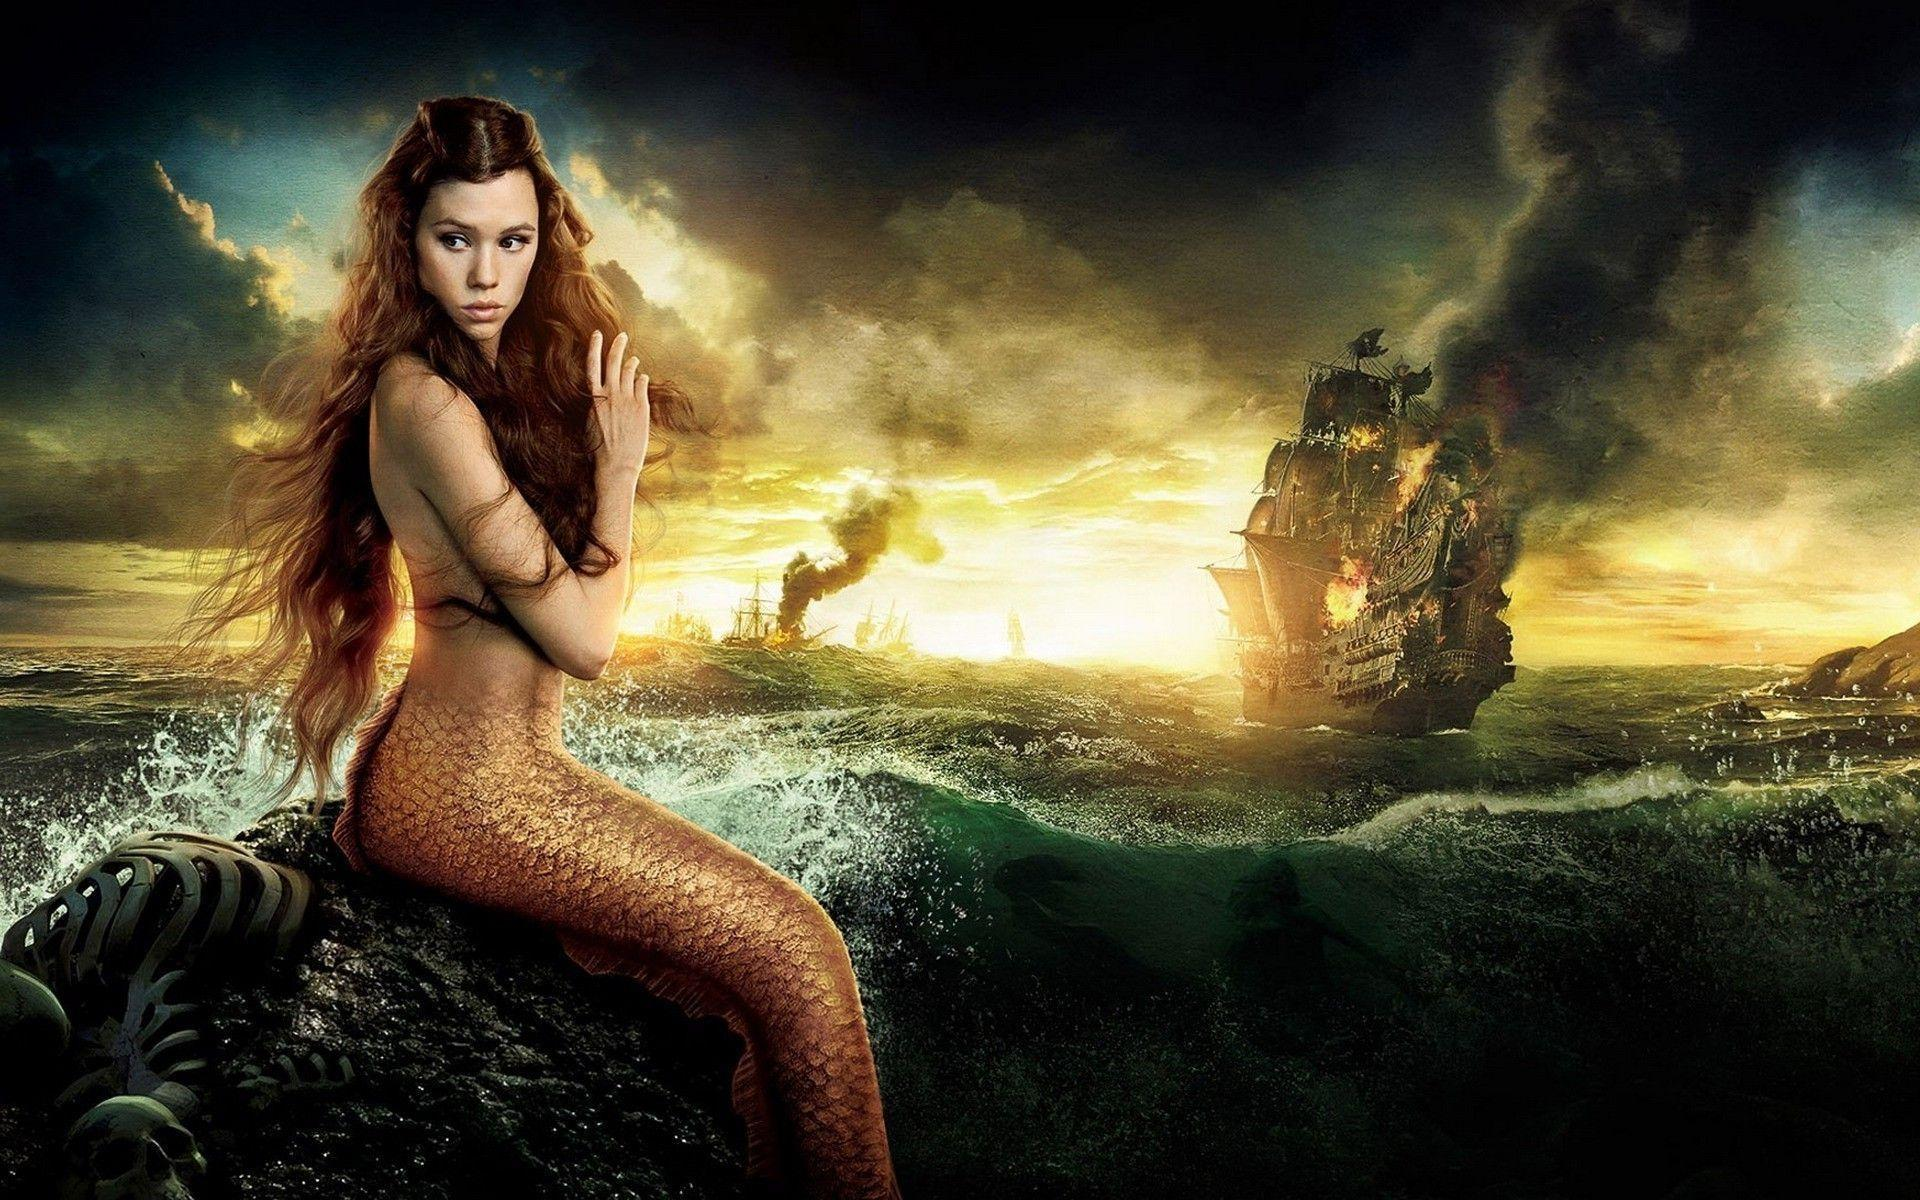 Pirates Of The Caribbean Beautiful Mermaid Desktop Wallpapers